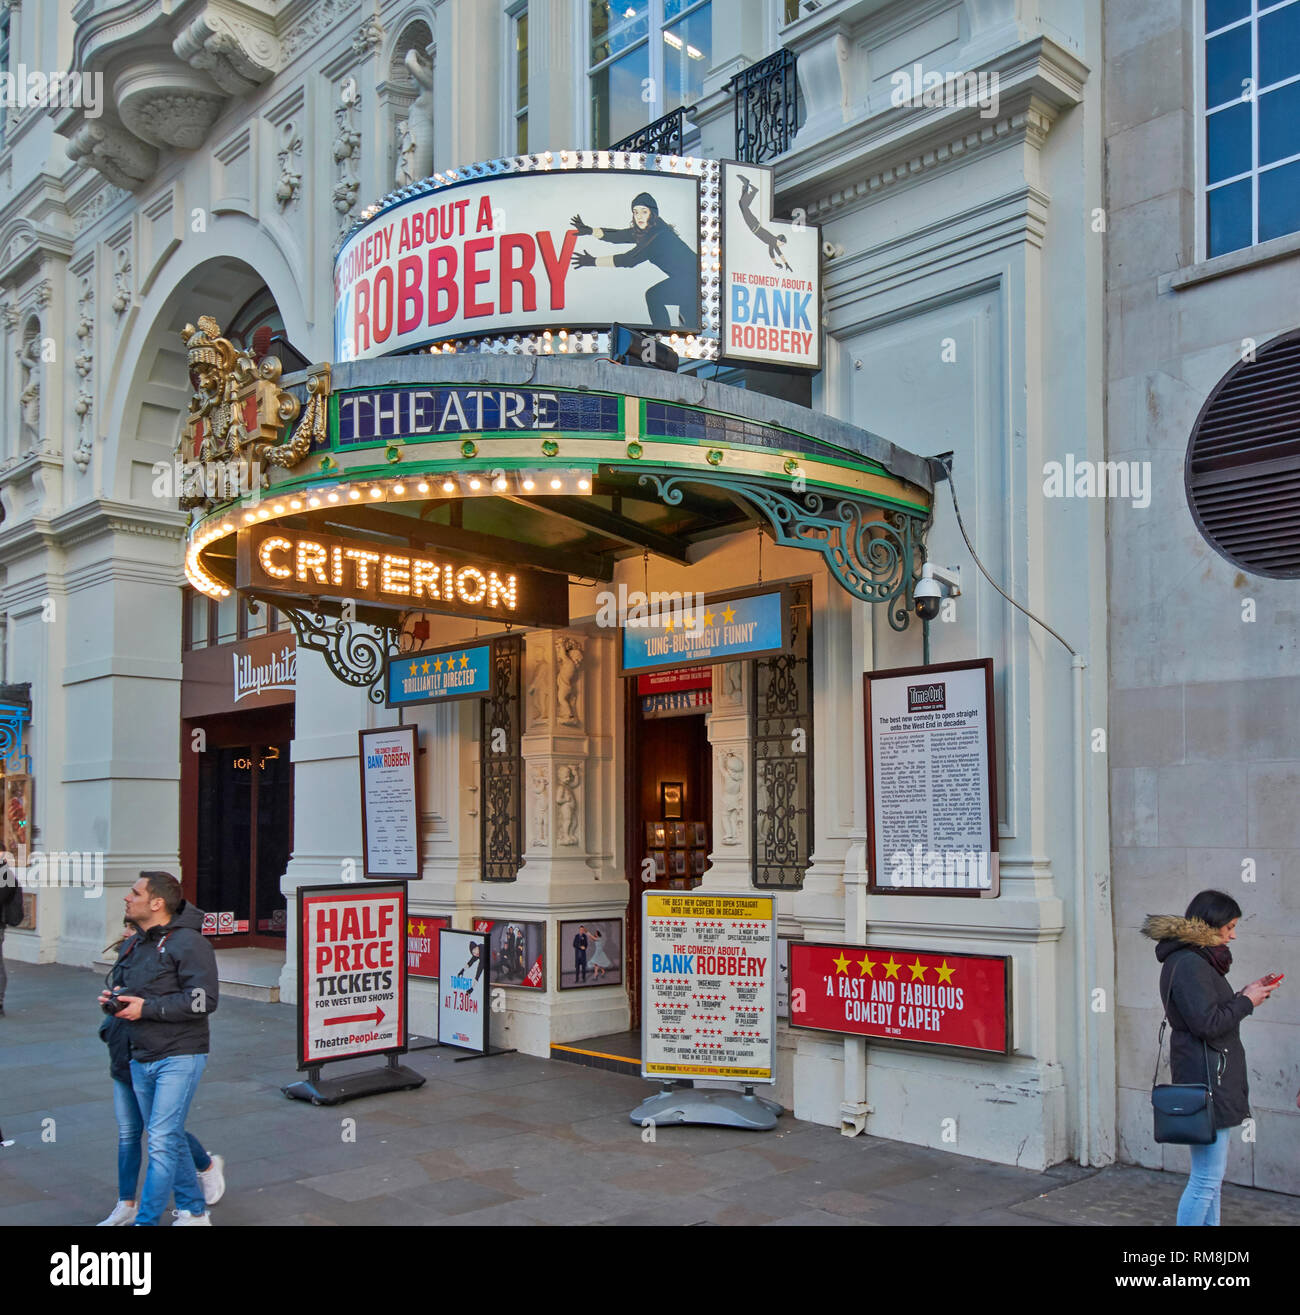 LONDON PICCADILLY CIRCUS THE WEST END CRITERION THEATRE AND ENTRANCE - Stock Image